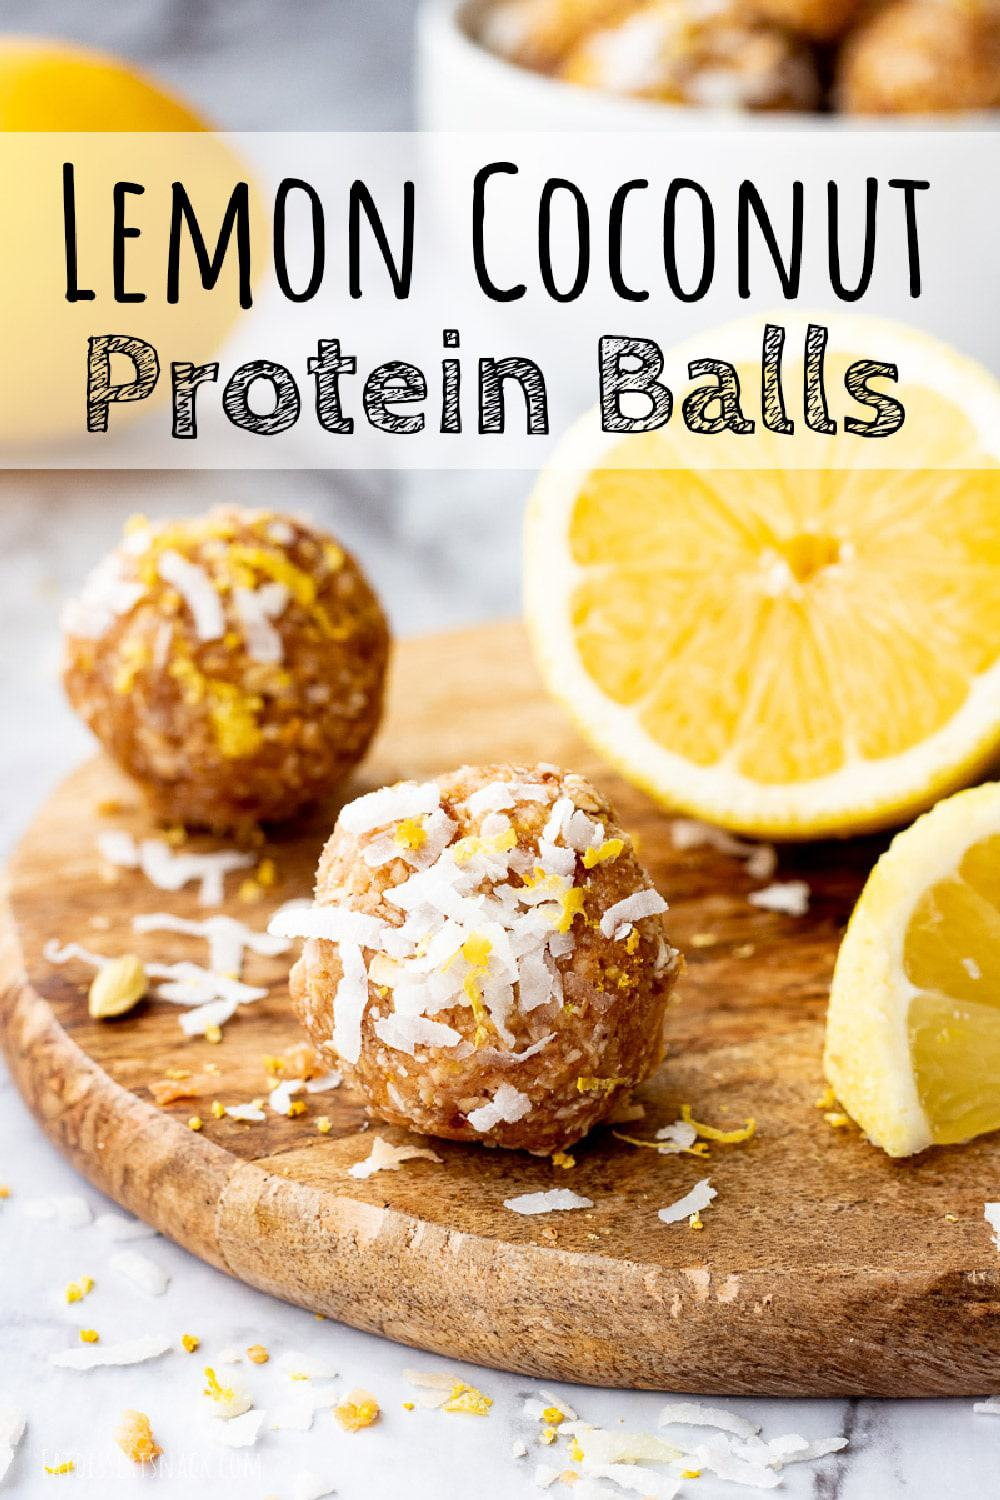 Lemon coconut protein ball on round wood board with sliced lemon with text overlay.